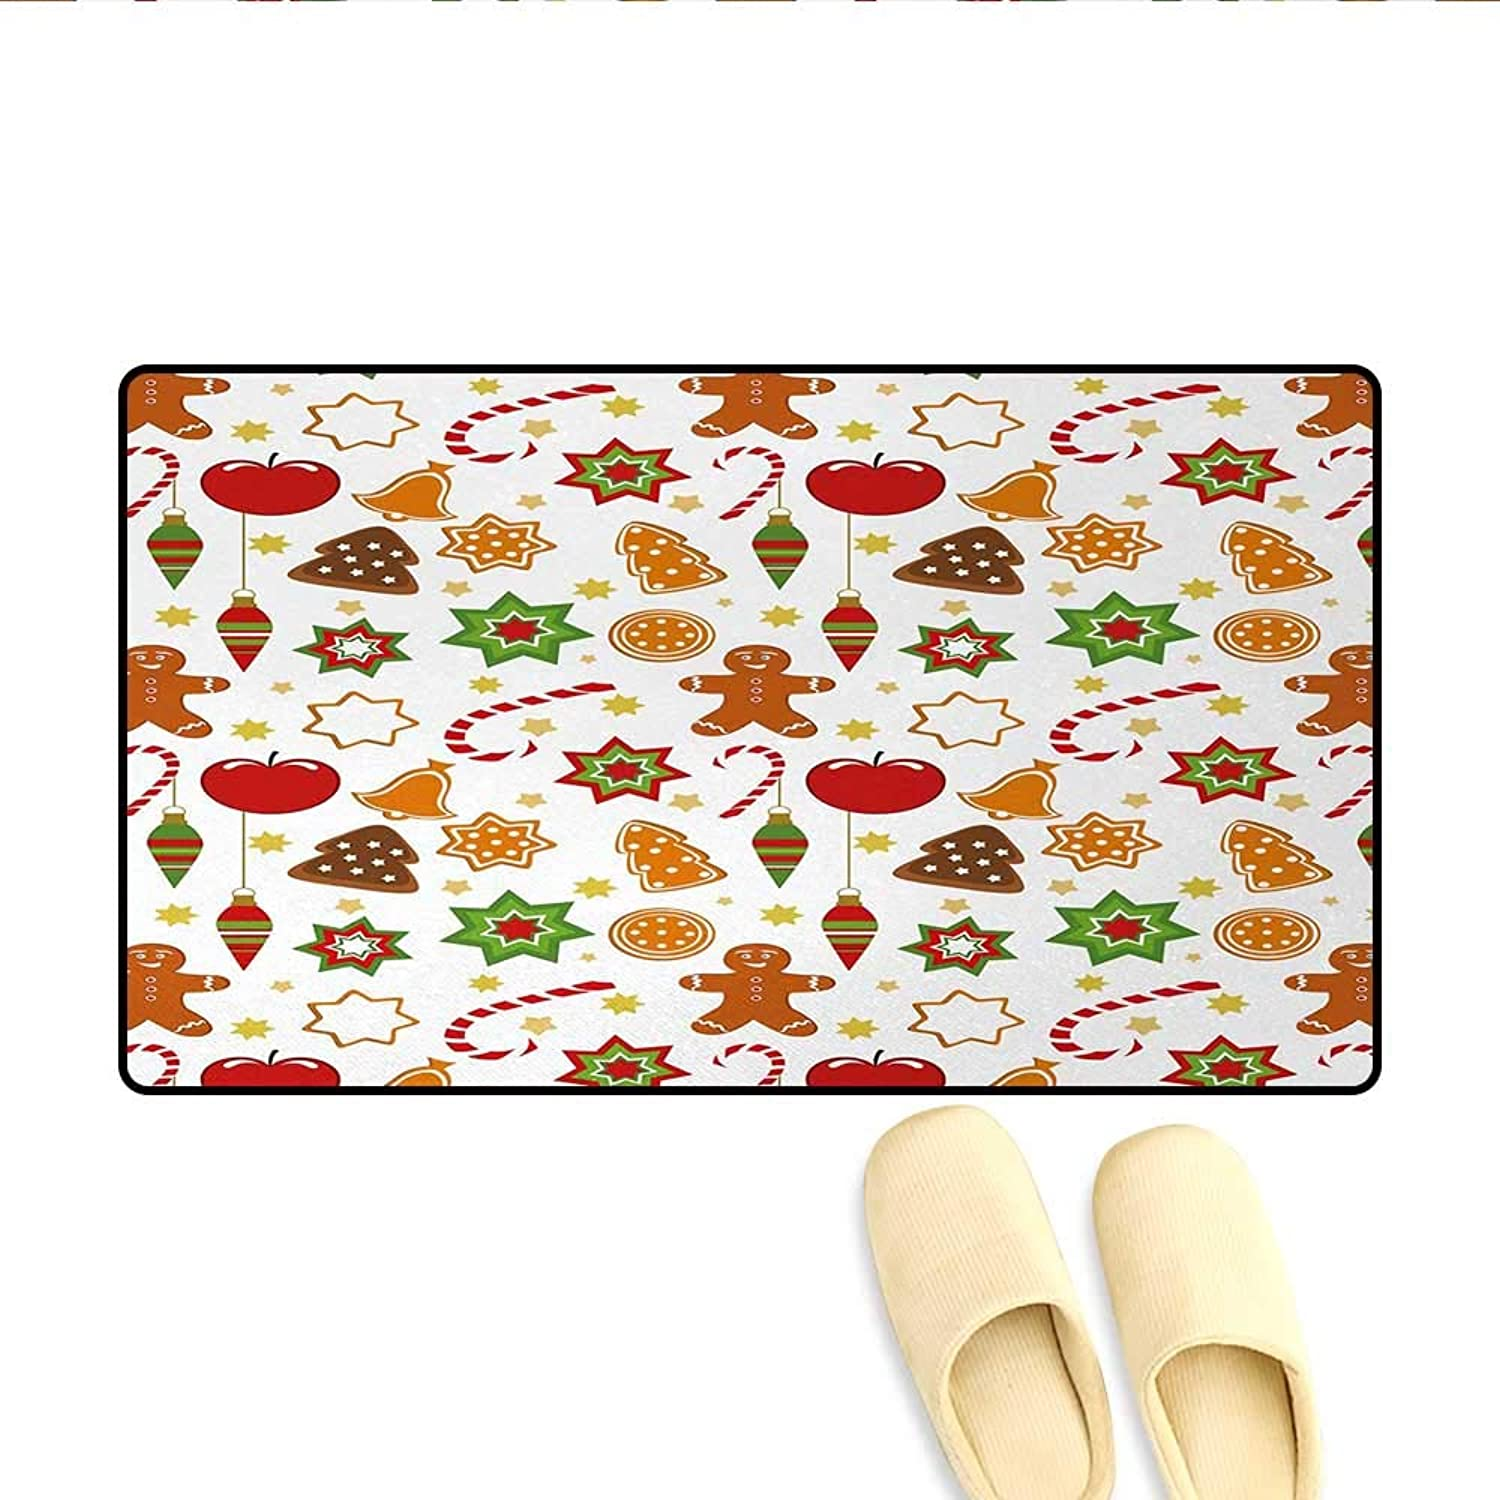 Door-mat,Festive Christmas Icons Graphic Pattern Star Figures Cookies Apples Bells,Door Mats Inside Bathroom Mat Non Slip,Multicolor,Size 32 x48